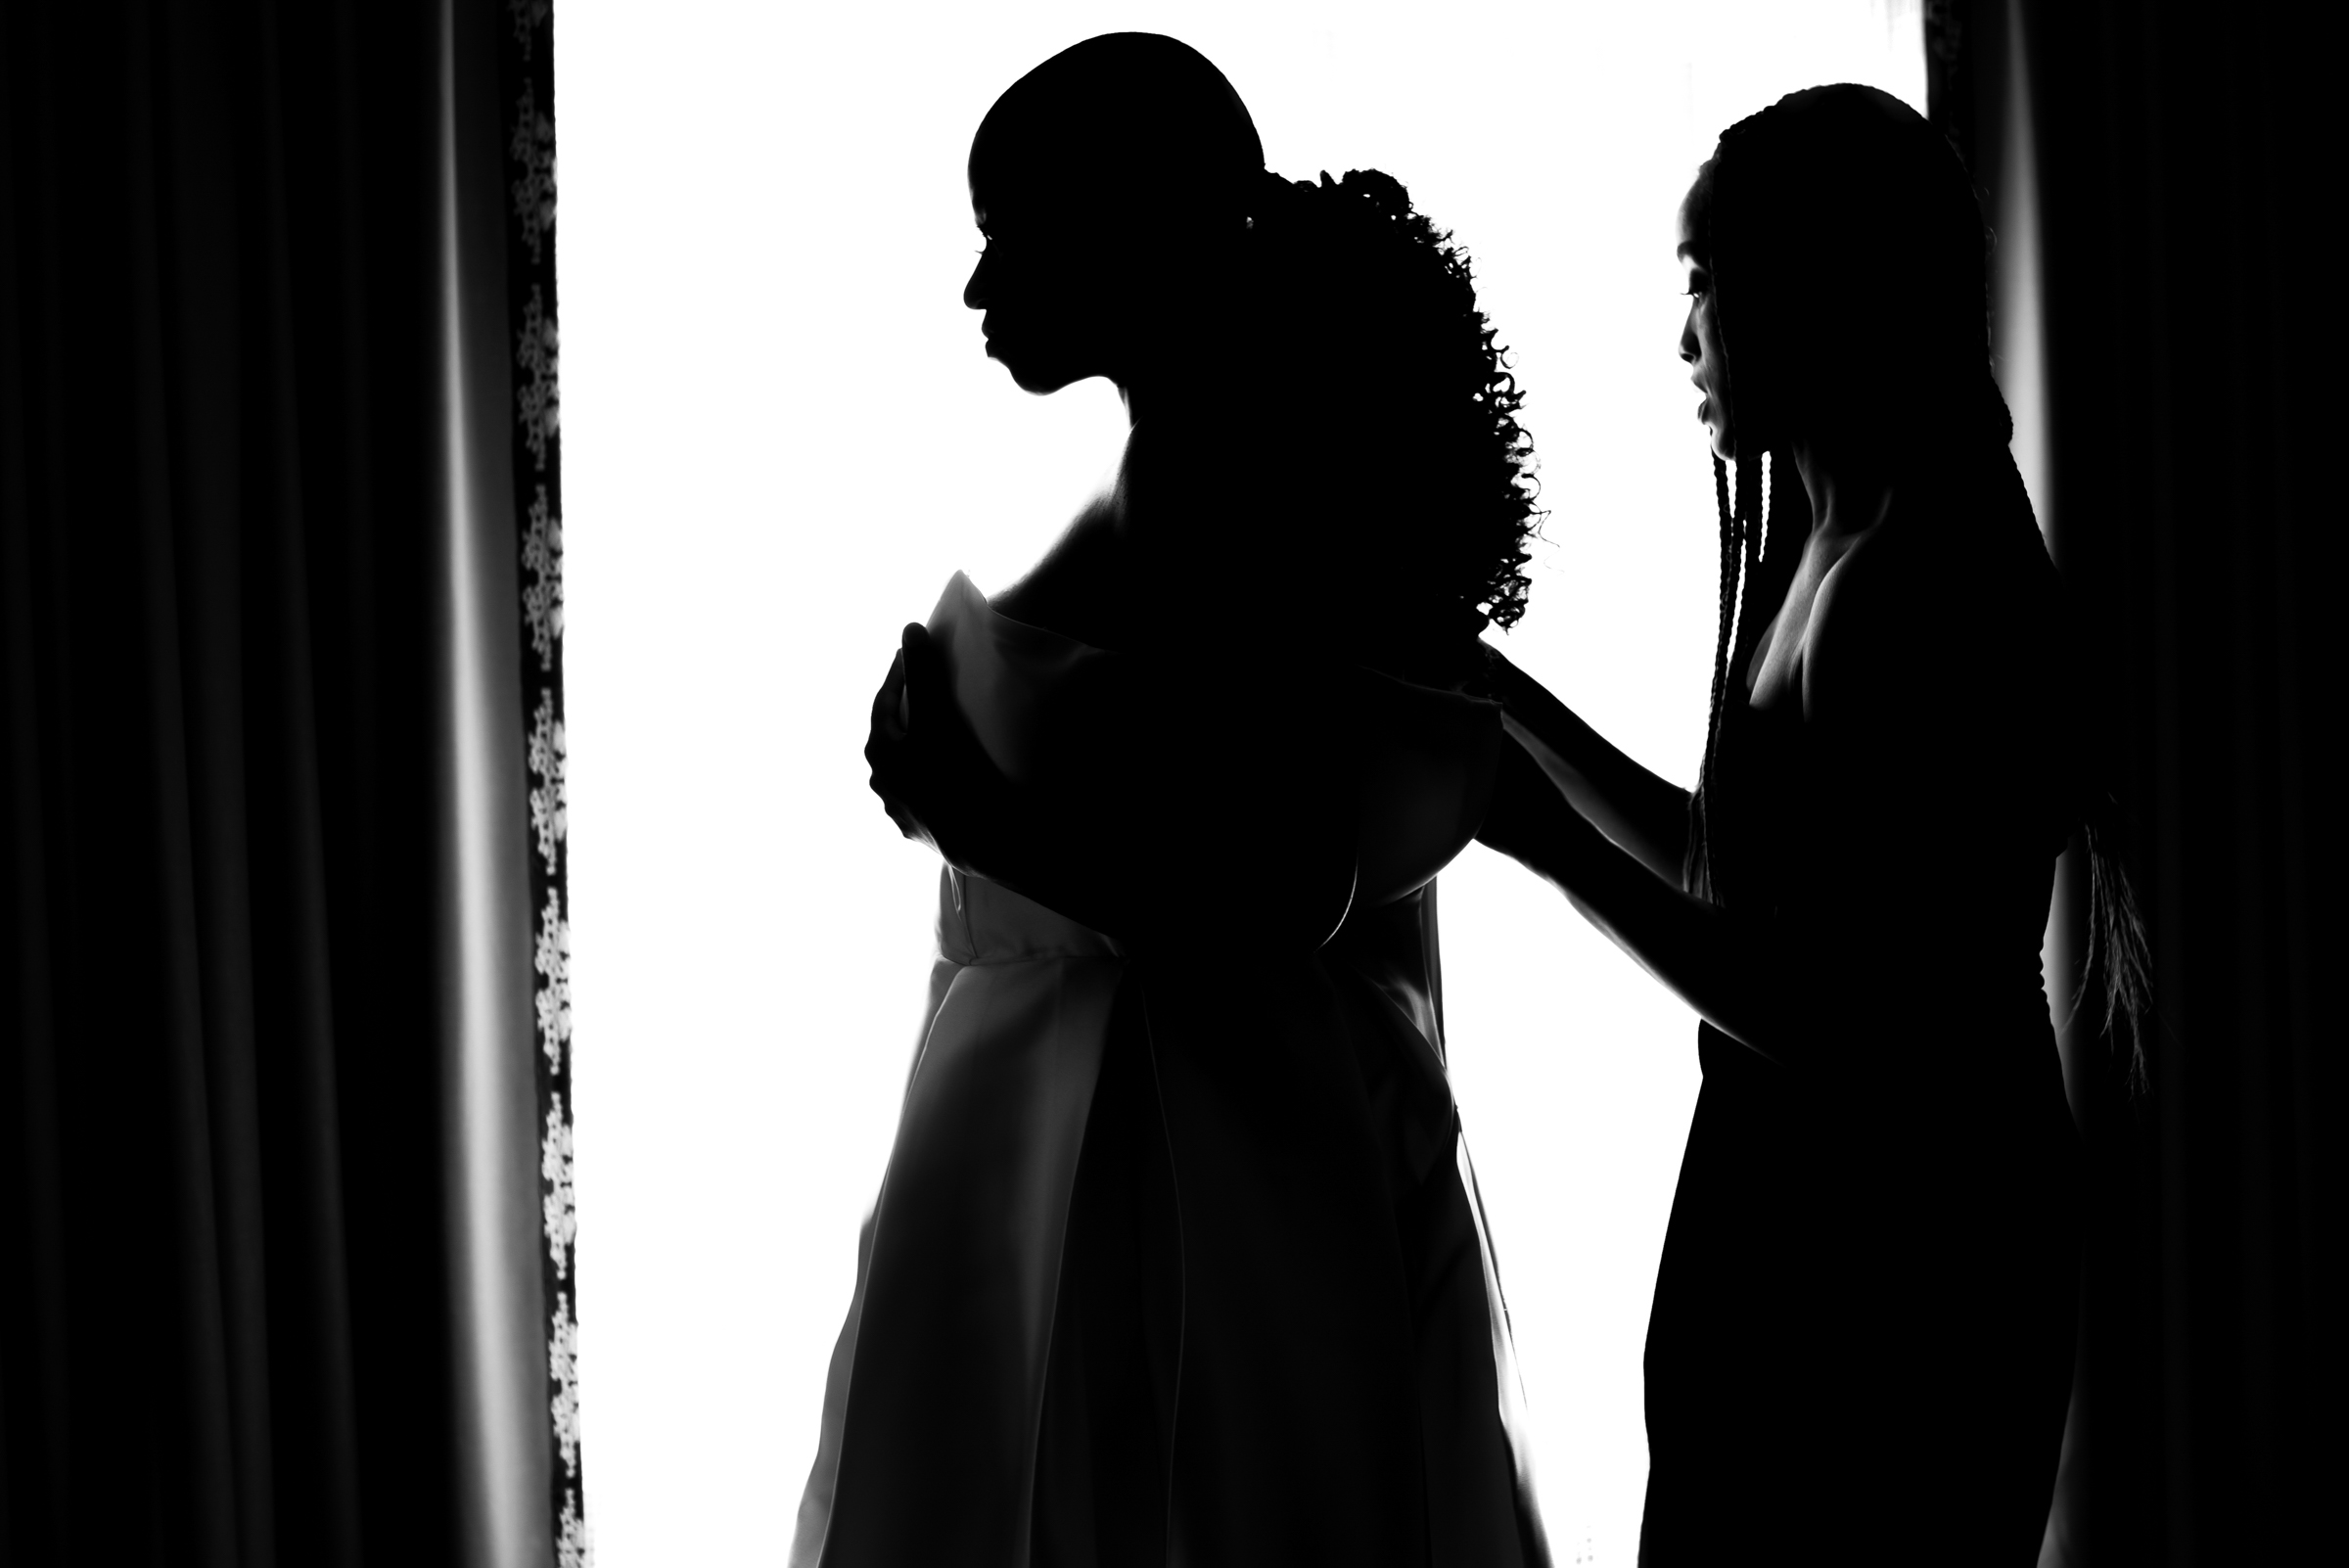 Profile silhouette of buttoning up the bridal gown - photo by Ashleigh Bing Photography